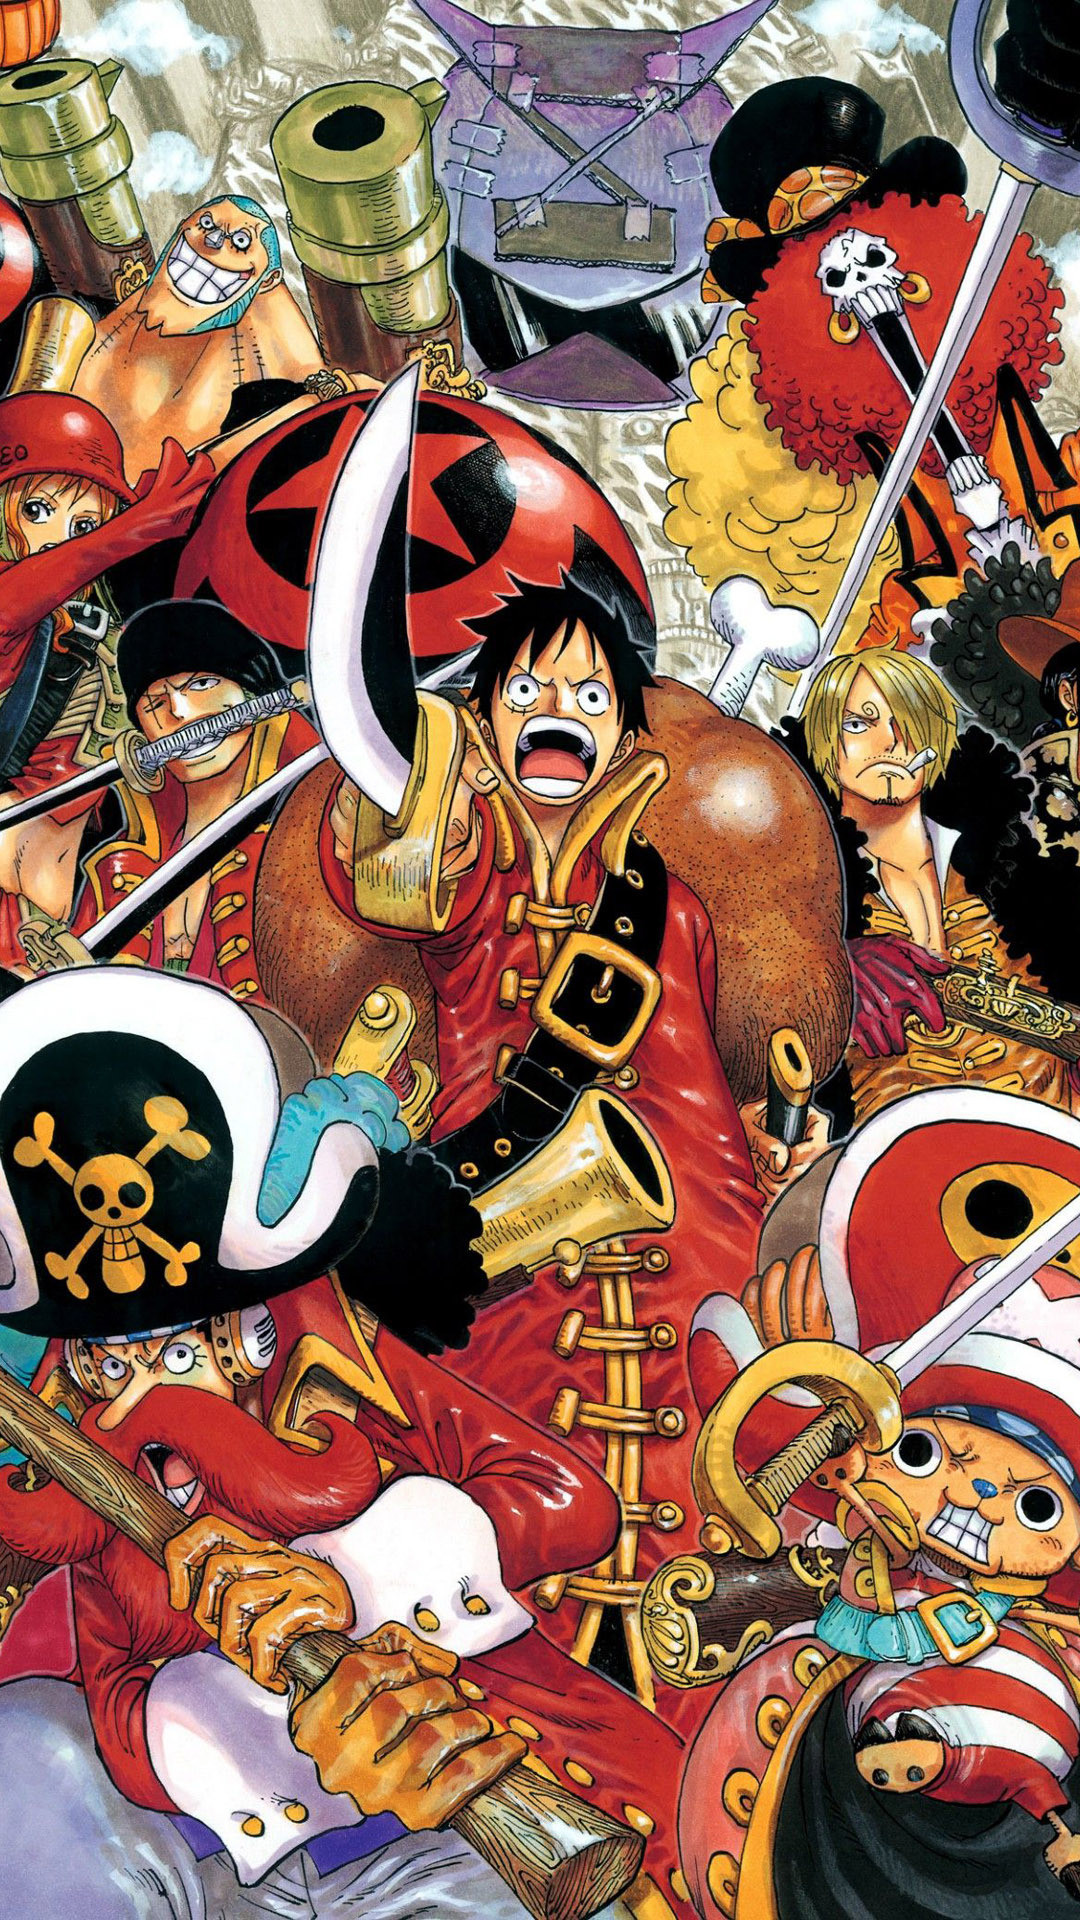 Res: 1080x1920, Best One Piece Wallpaper Vertical High Resolution Backgrounds Mobile For  Smartphone